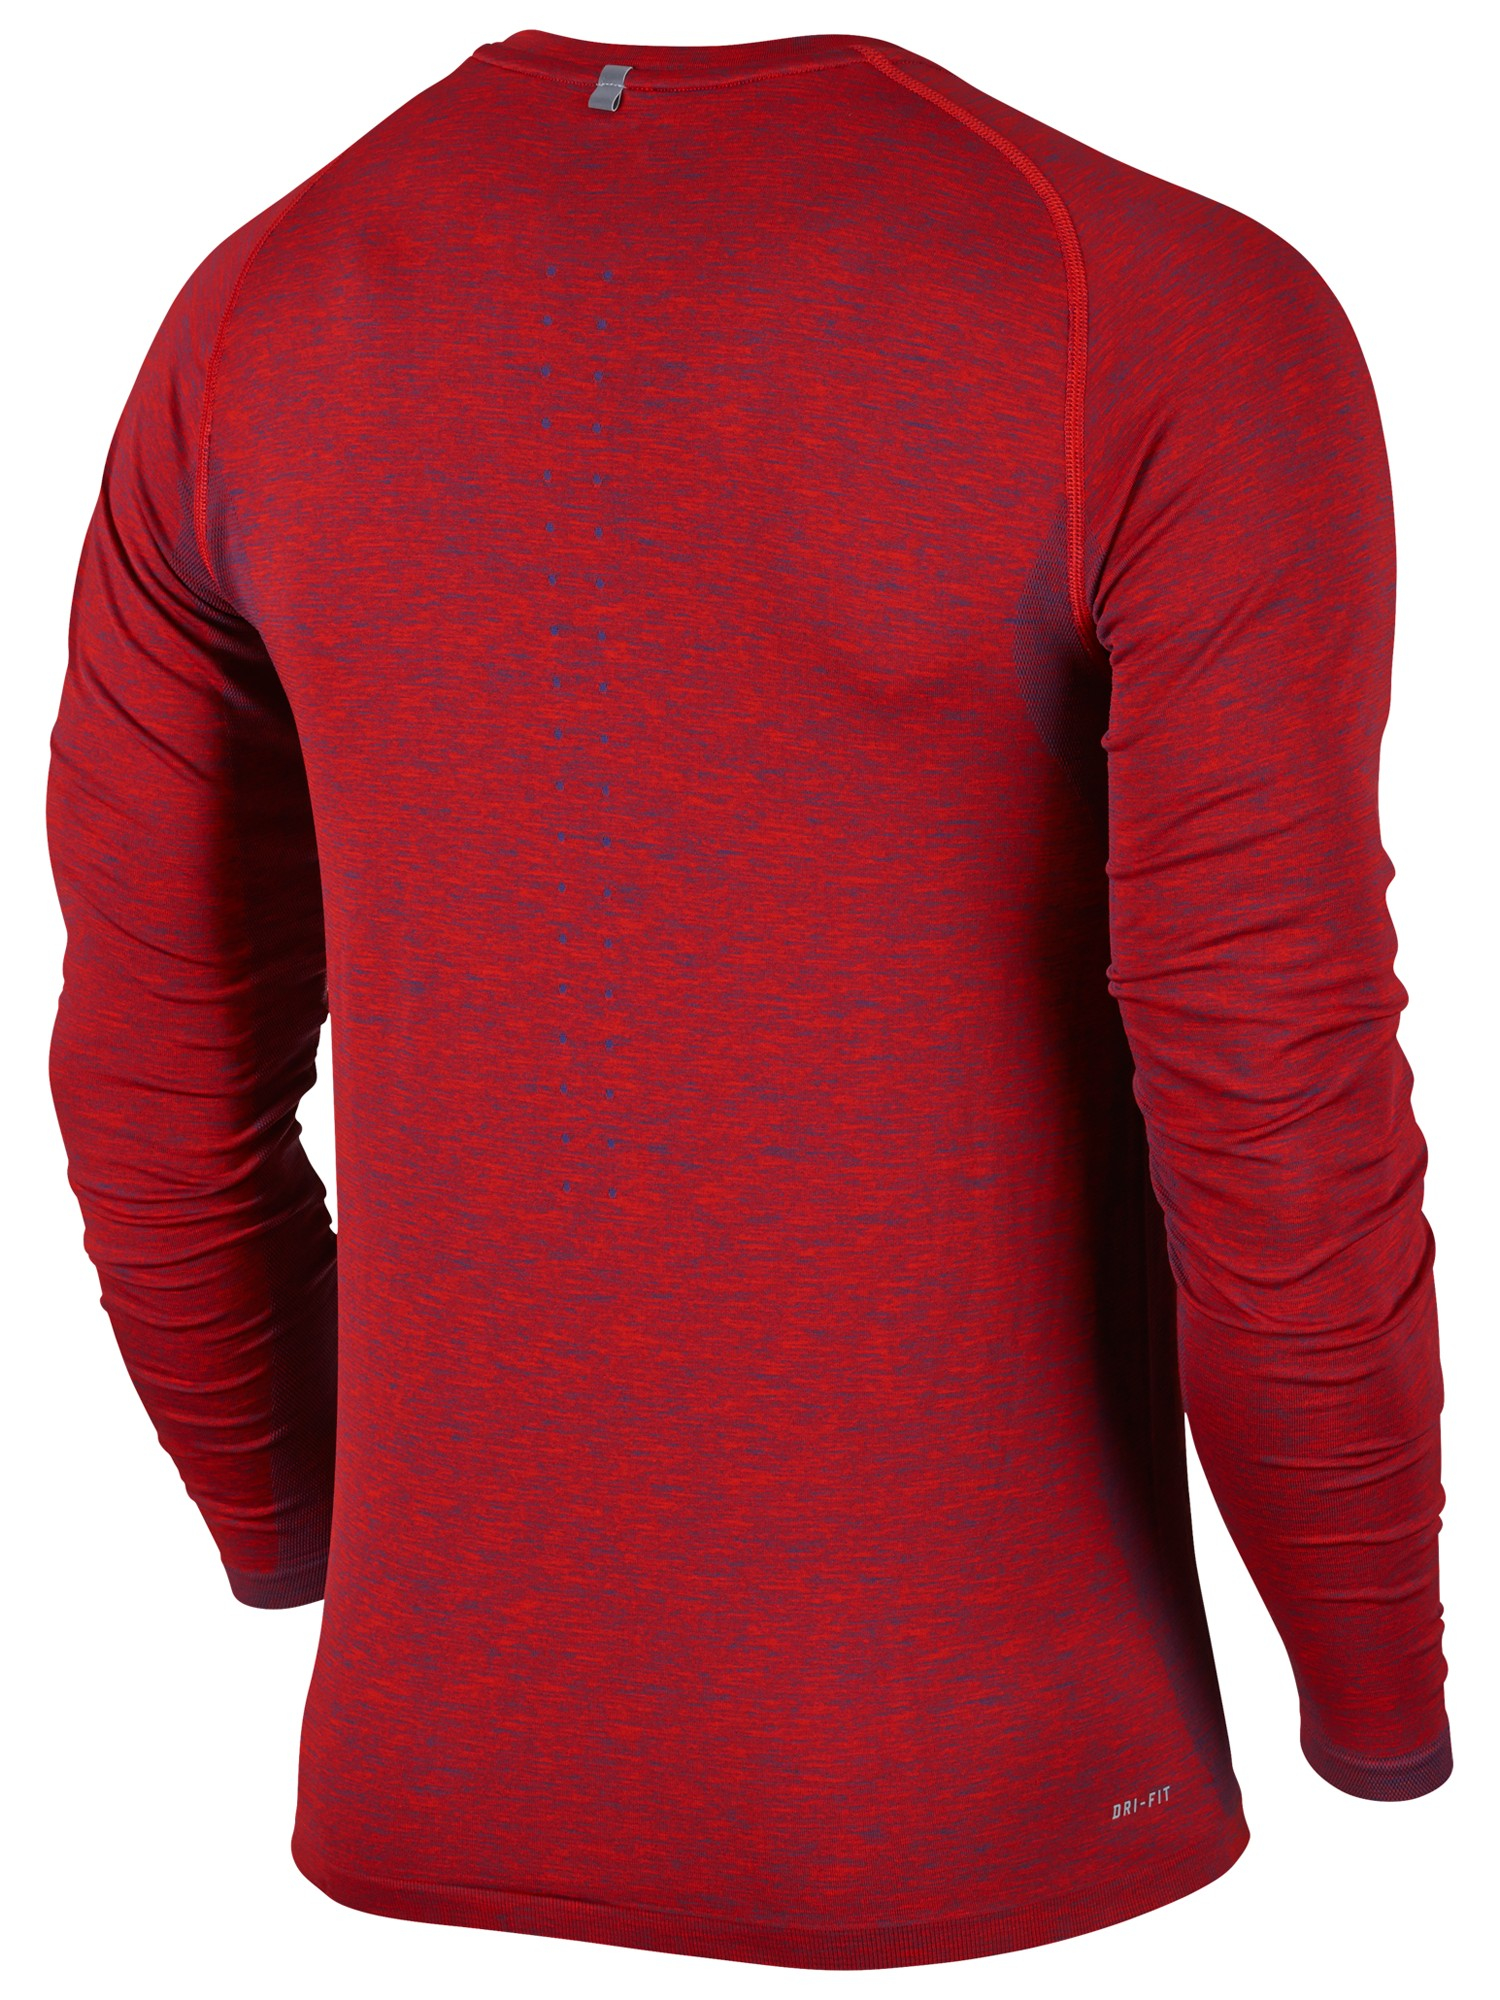 08b20bbfd Nike Dri-fit Knit Men's Running Top in Red for Men - Lyst